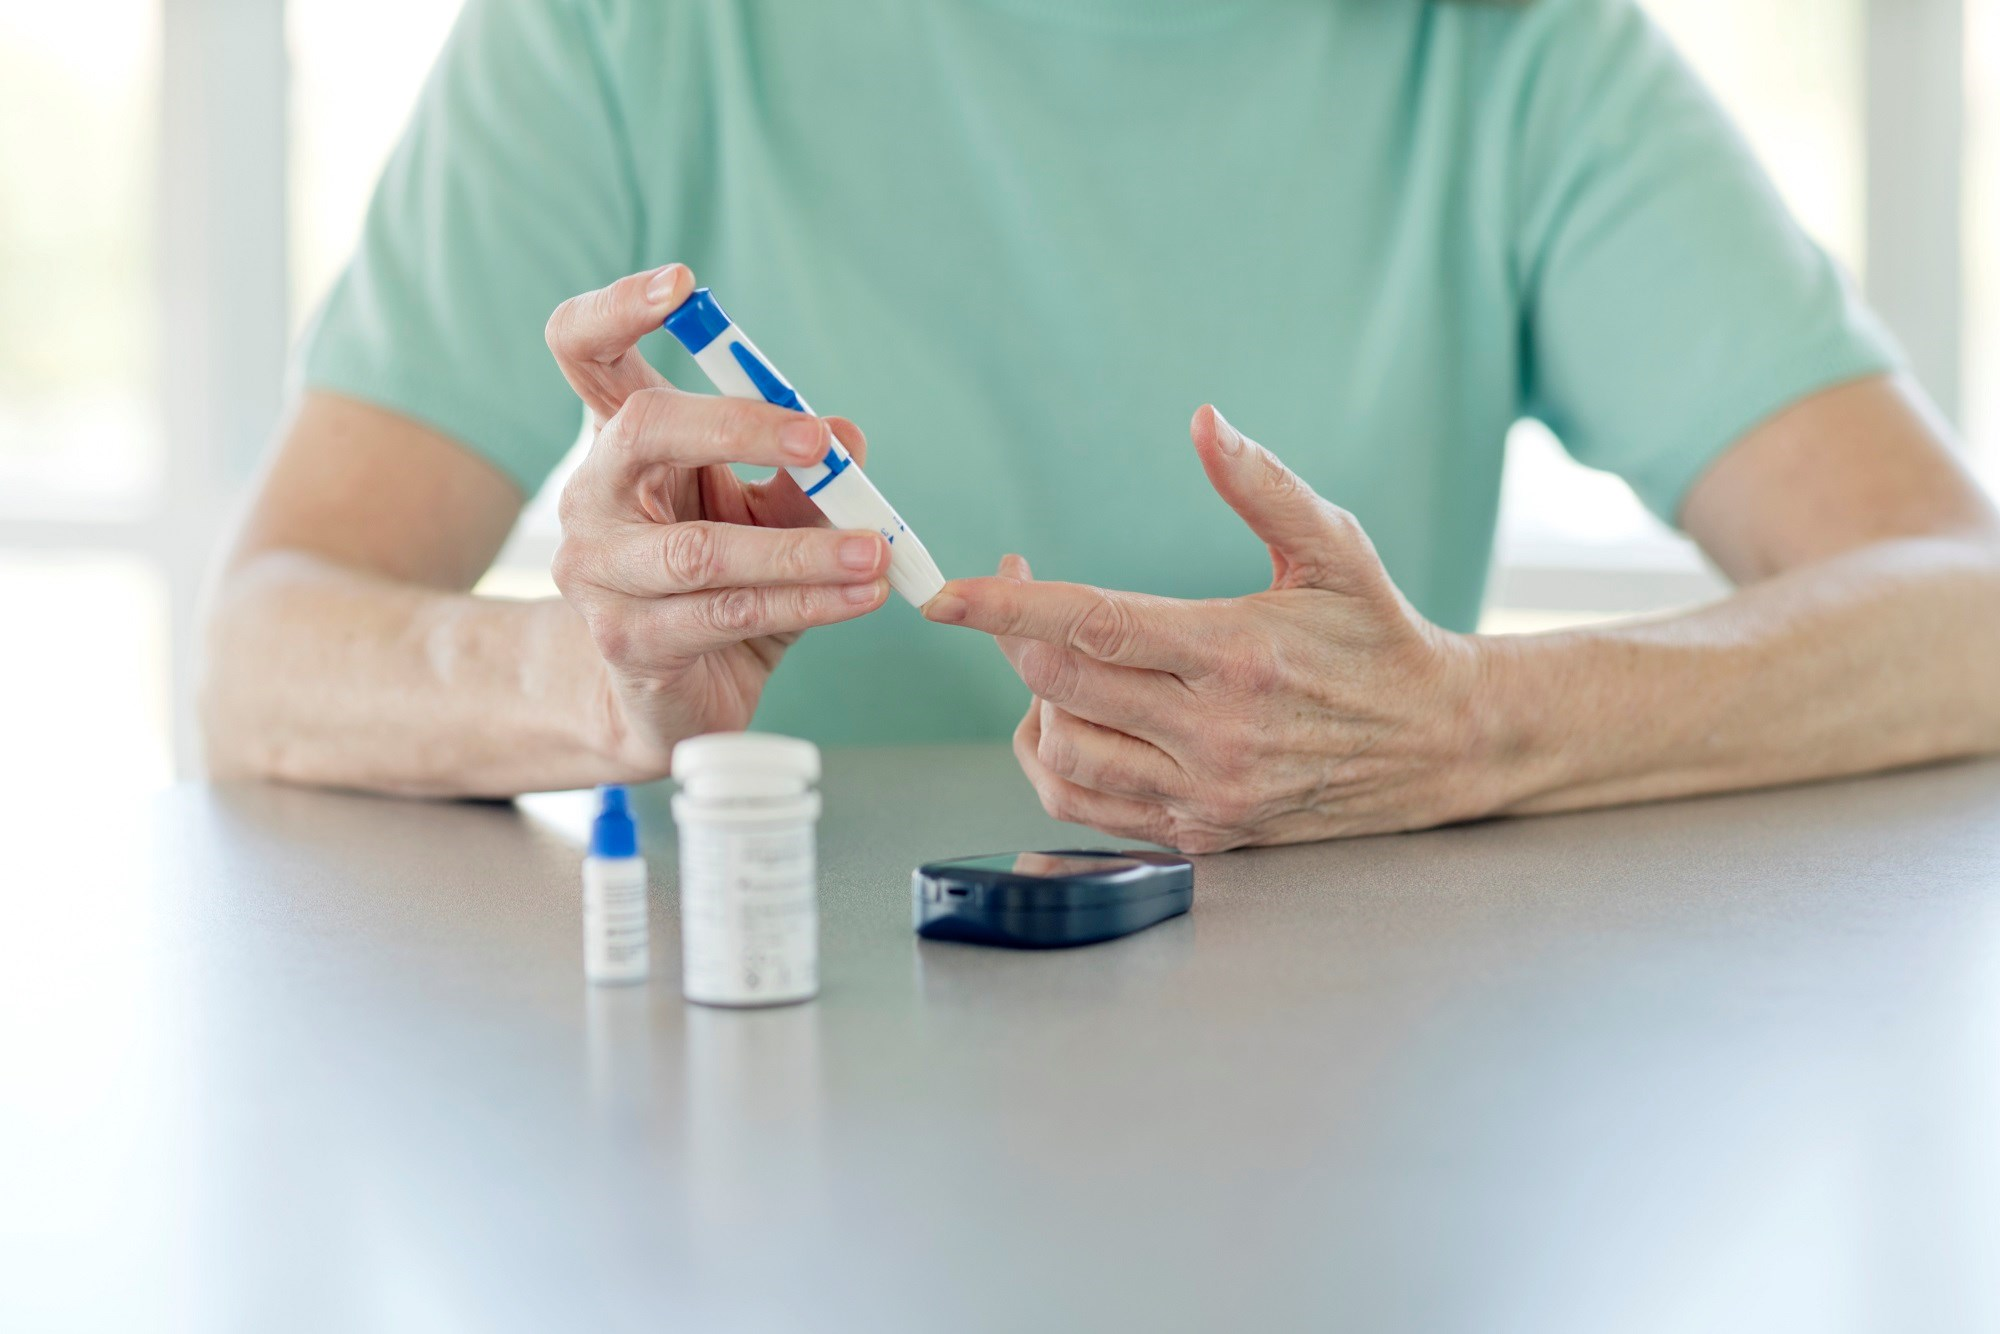 Researchers distributed a survey to evaluate the patterns and correlates of evidence-based interventions for diabetes management at local health departments in the US.